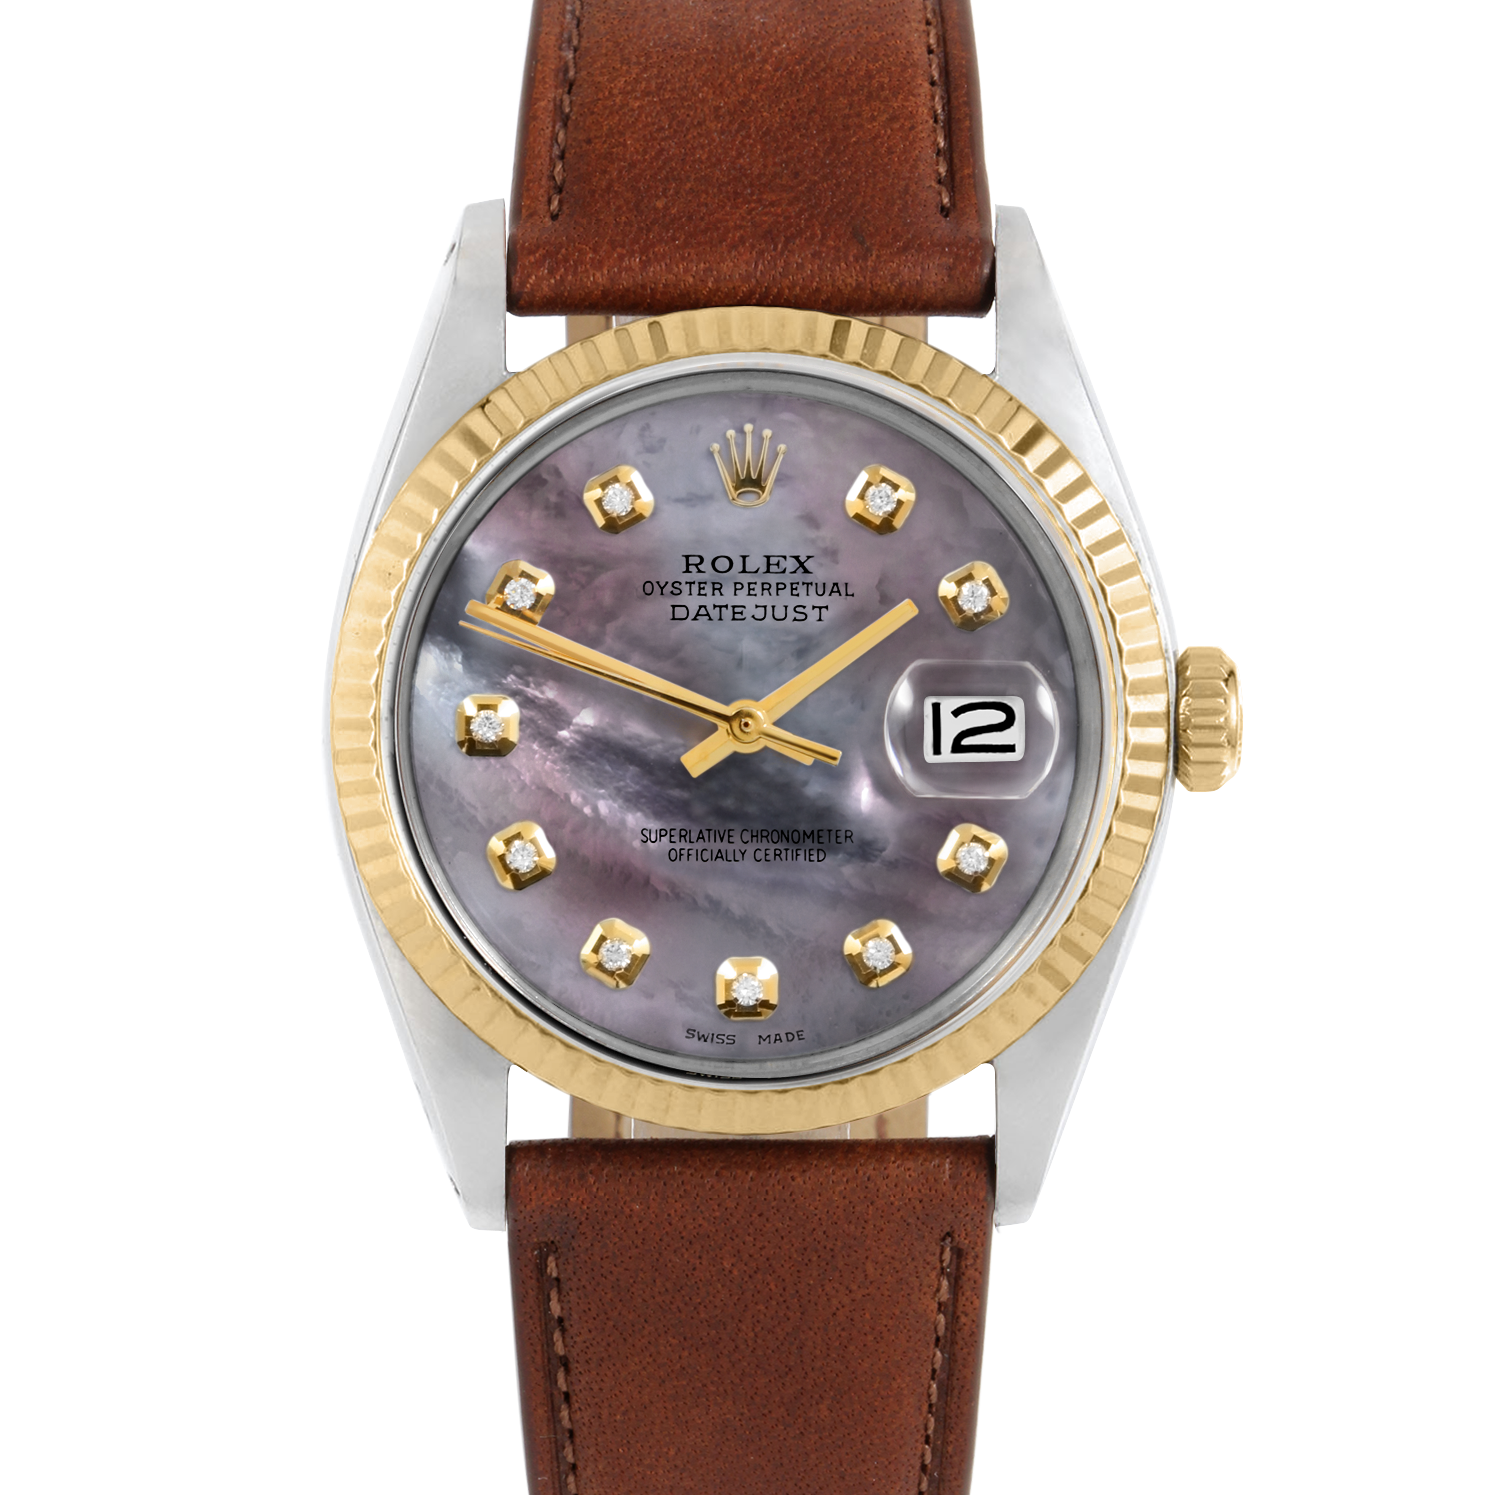 Rolex Datejust 36 1601 Yellow Gold & Steel, Custom Black Mother of Pearl, Fluted Bezel On A Mahogany Calf Leather Strap - Men's Pre-Owned Watch